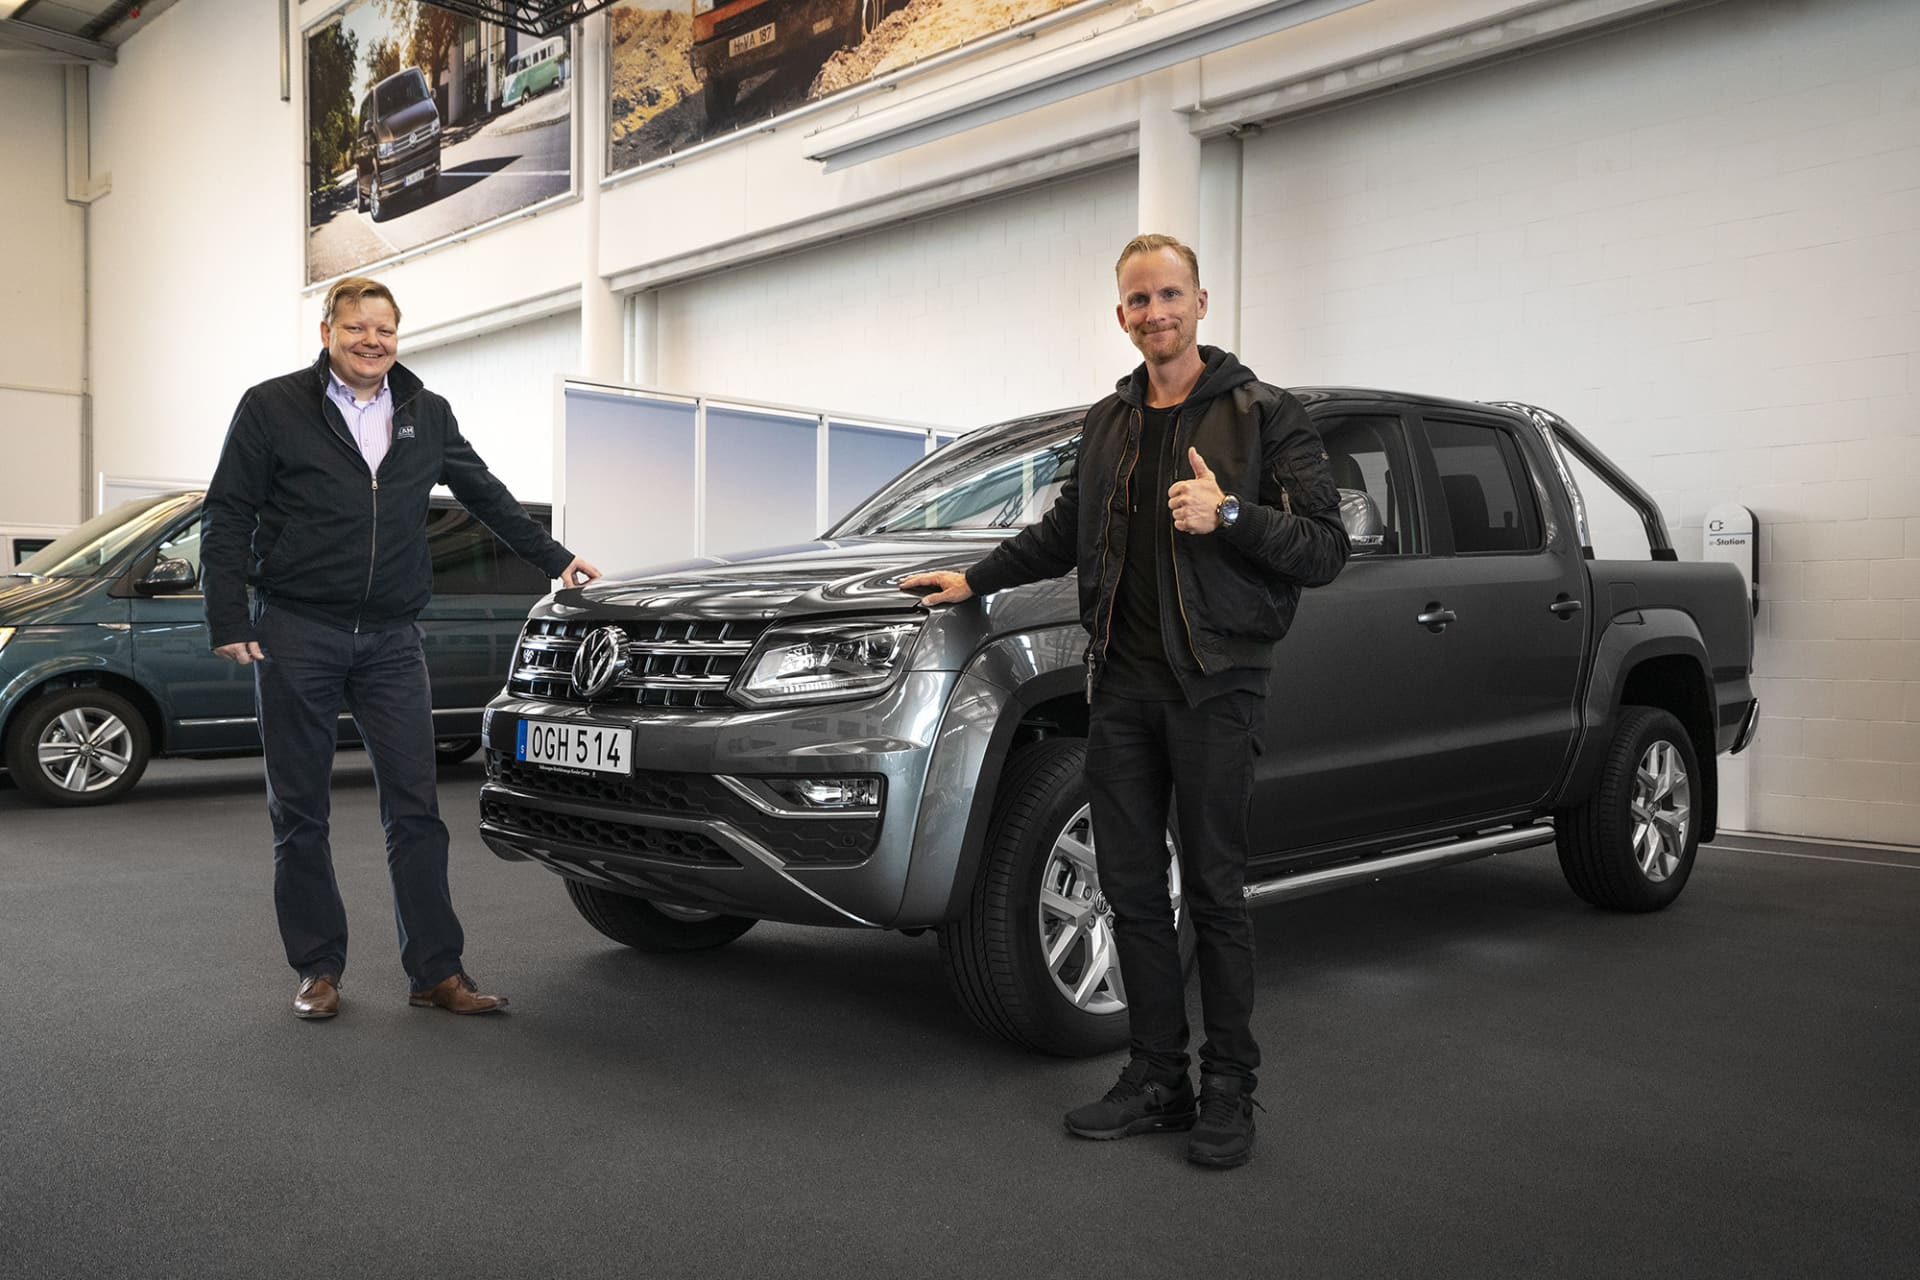 As the first Swedish customer, I picked up my Amarok V6 at the factory in Hannover. In addition, I was among the first Swedish customers to get the Amarok V6 delivered.